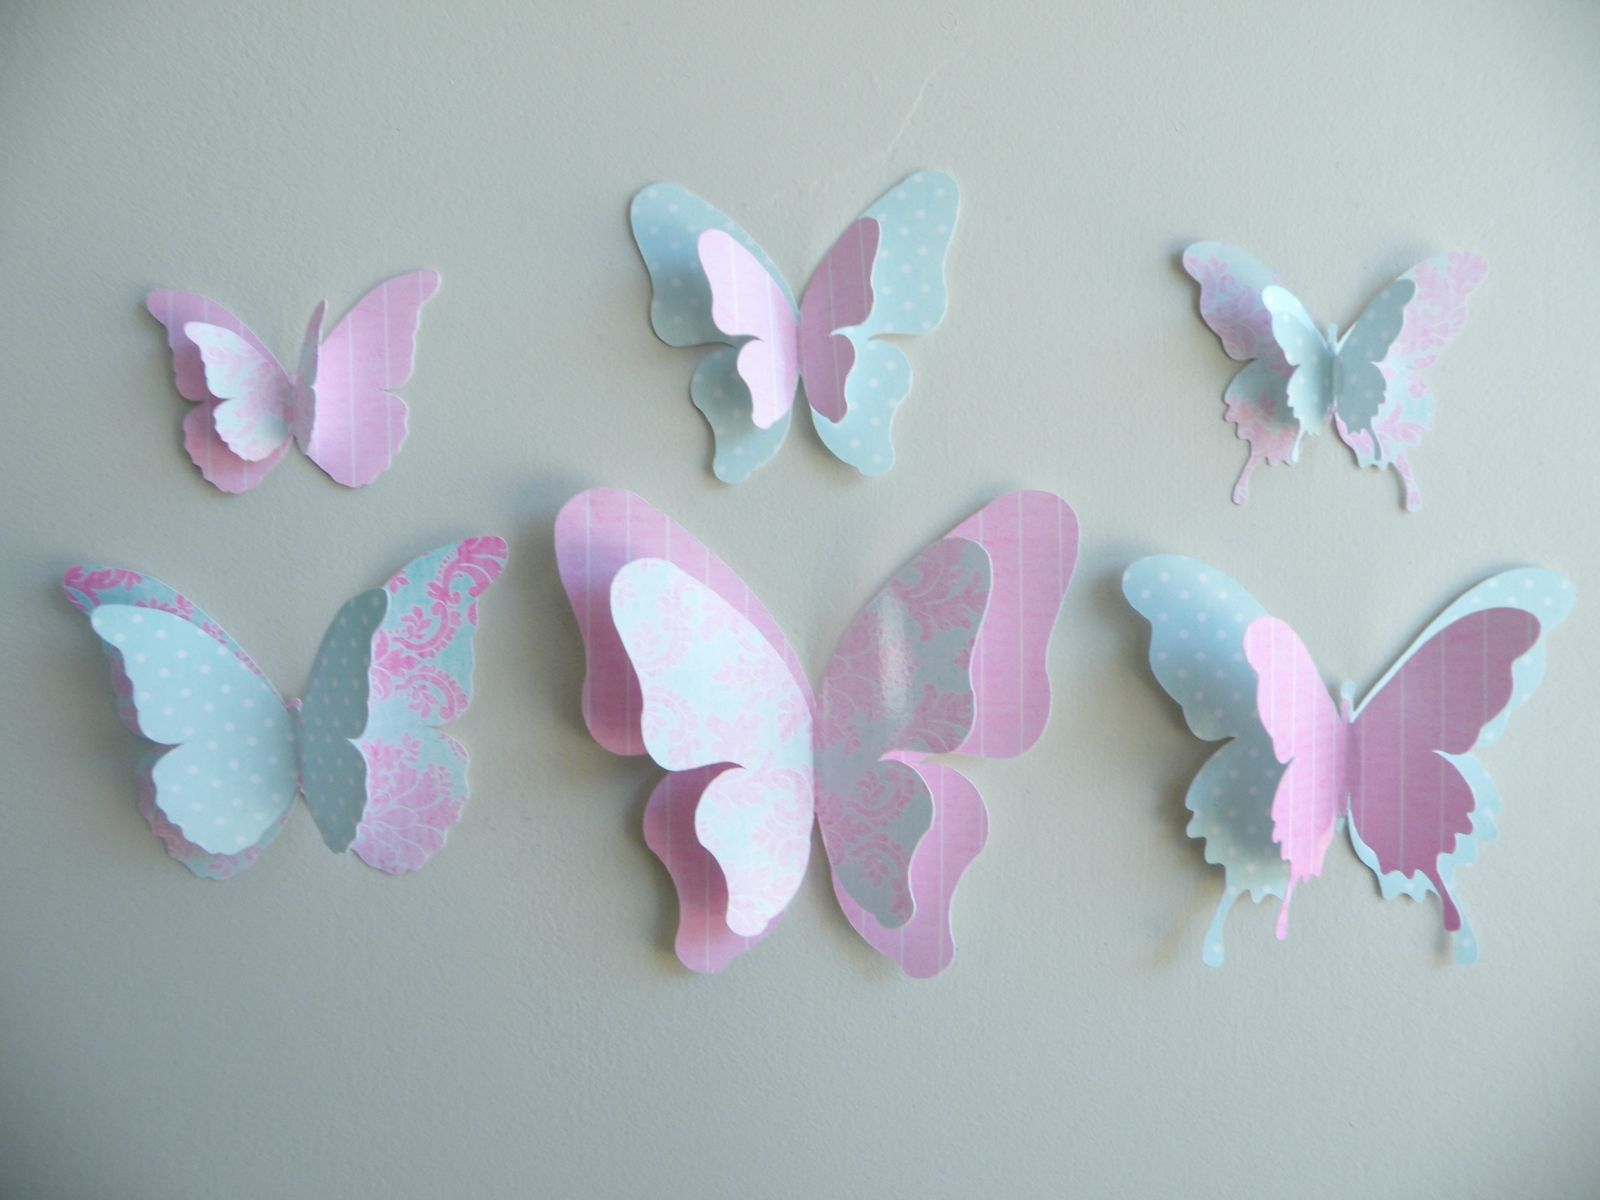 Butterfly decorations wedding decorations pinterest for Butterflies for crafts and decoration